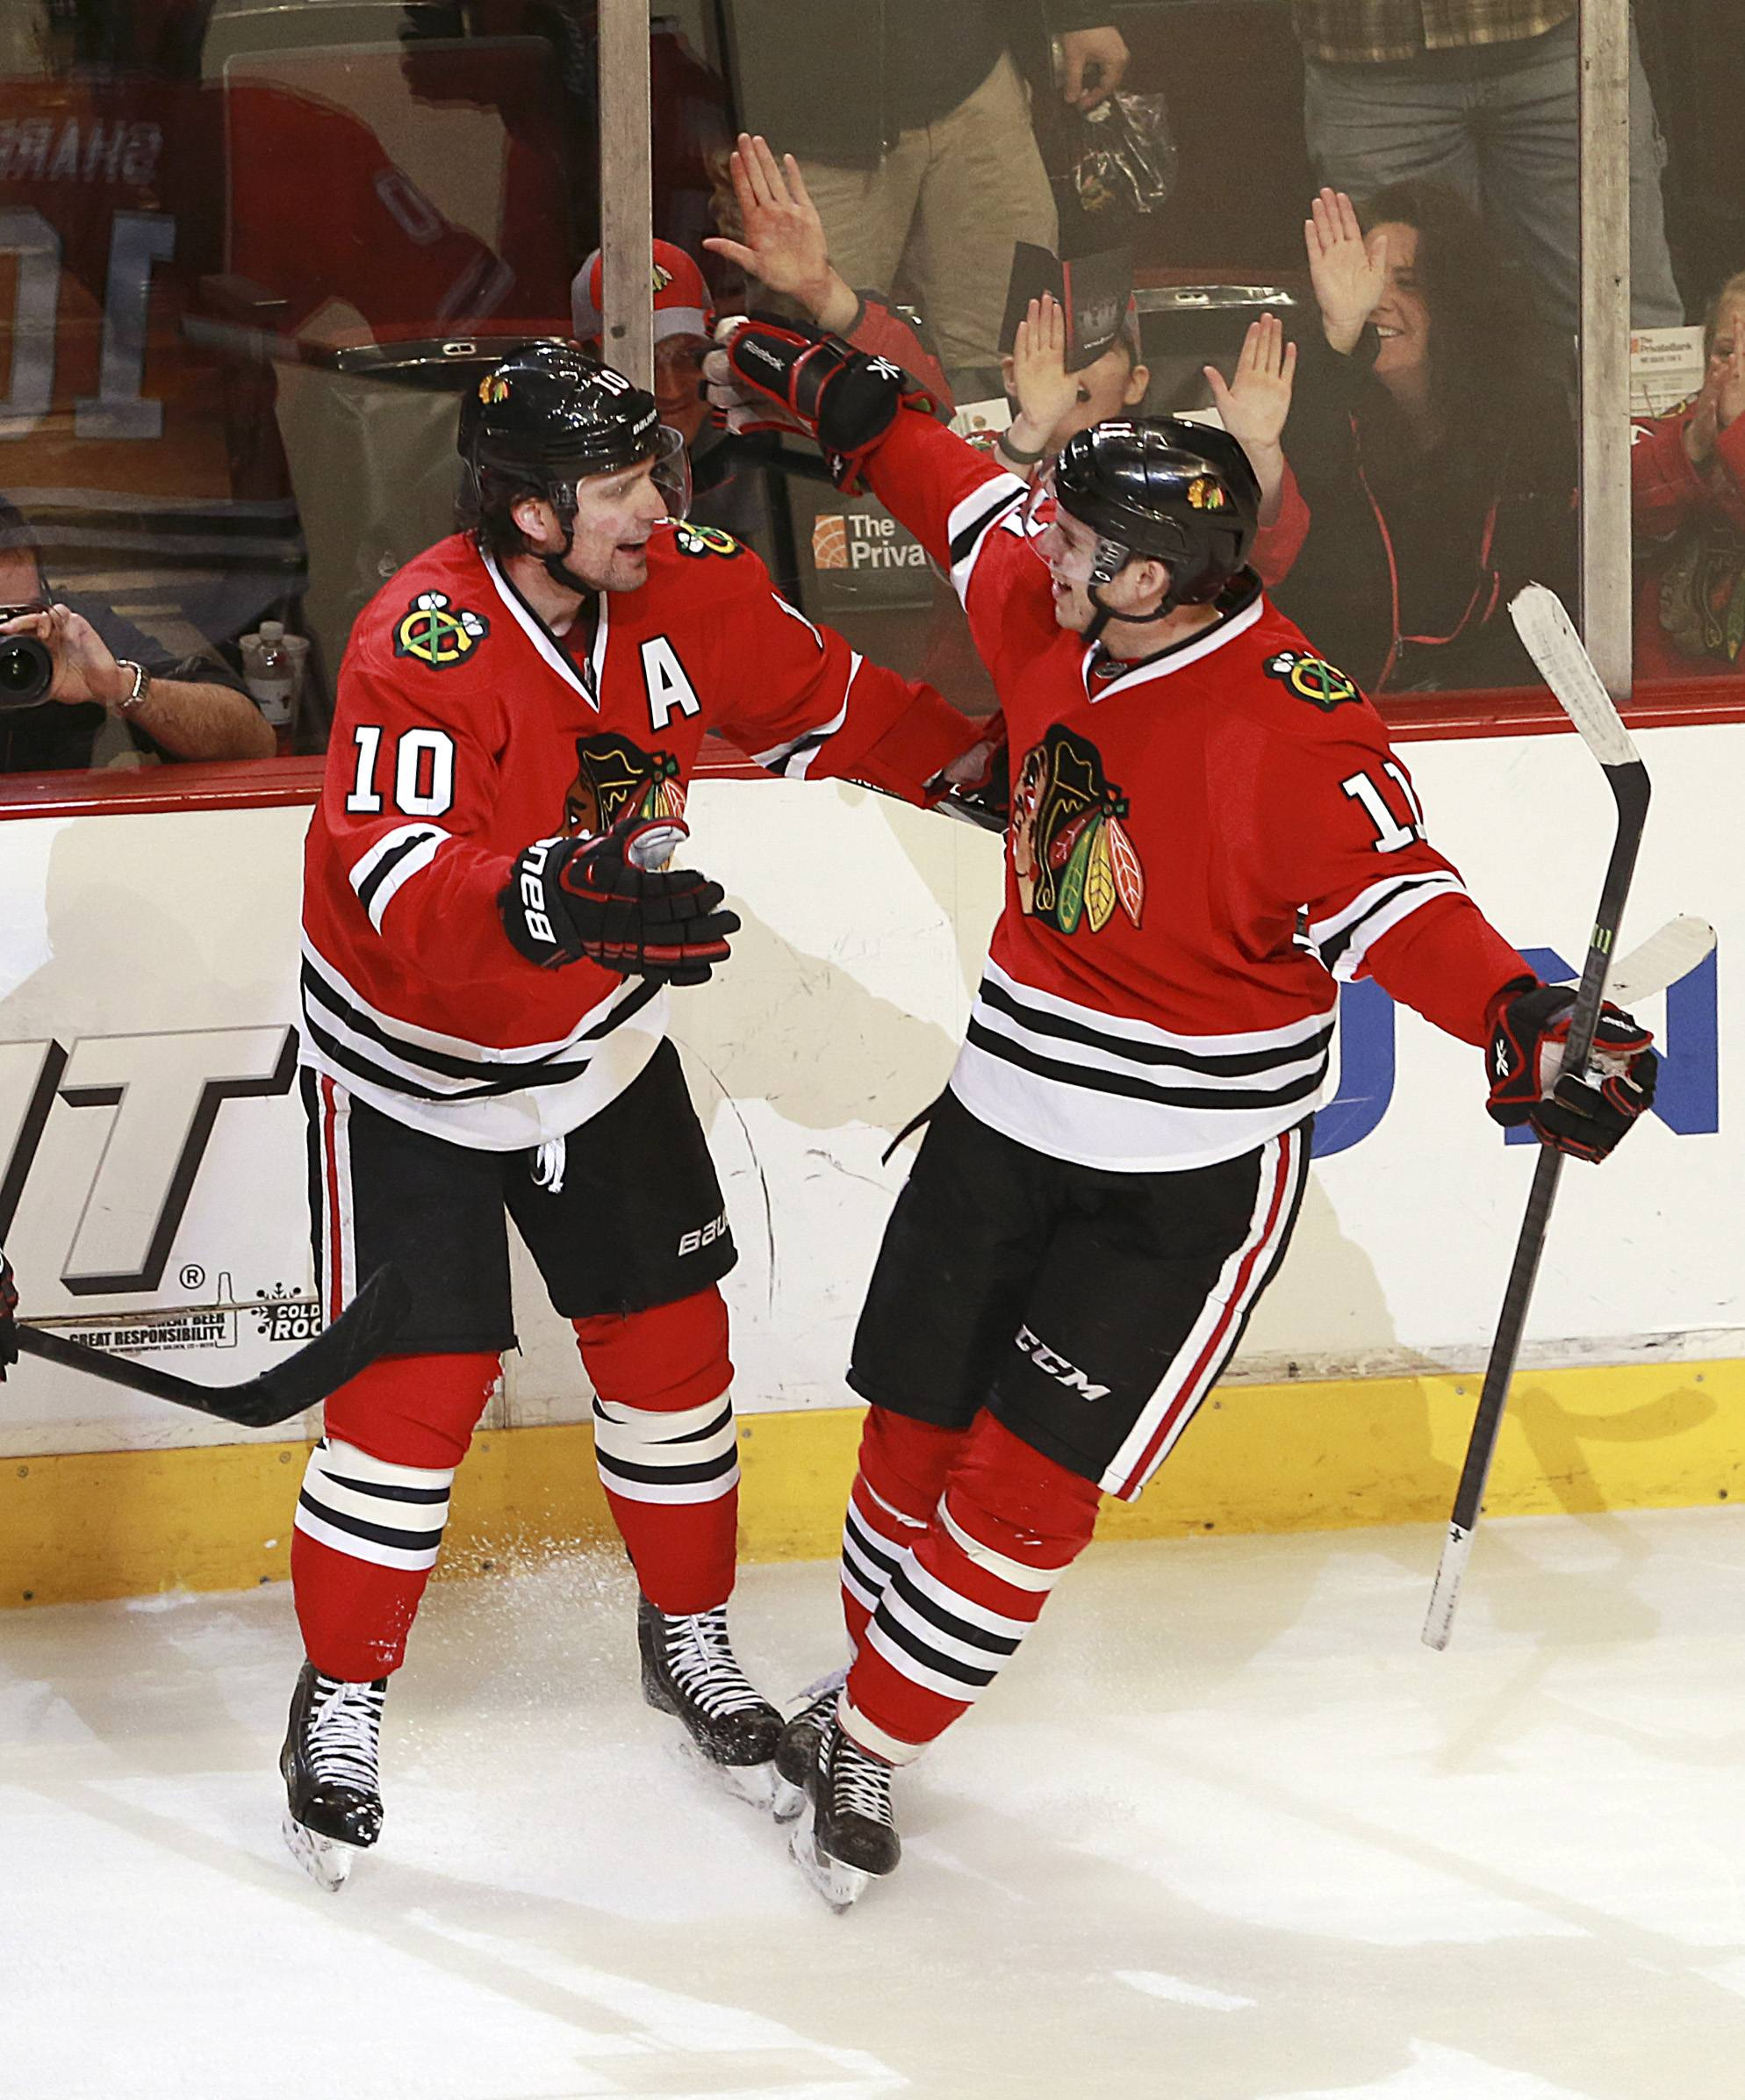 The Blackhawks' Patrick Sharp, left, and Jeremy Morin celebrate after Sharp's goal in the second period Sunday against the Blues at the United Center.